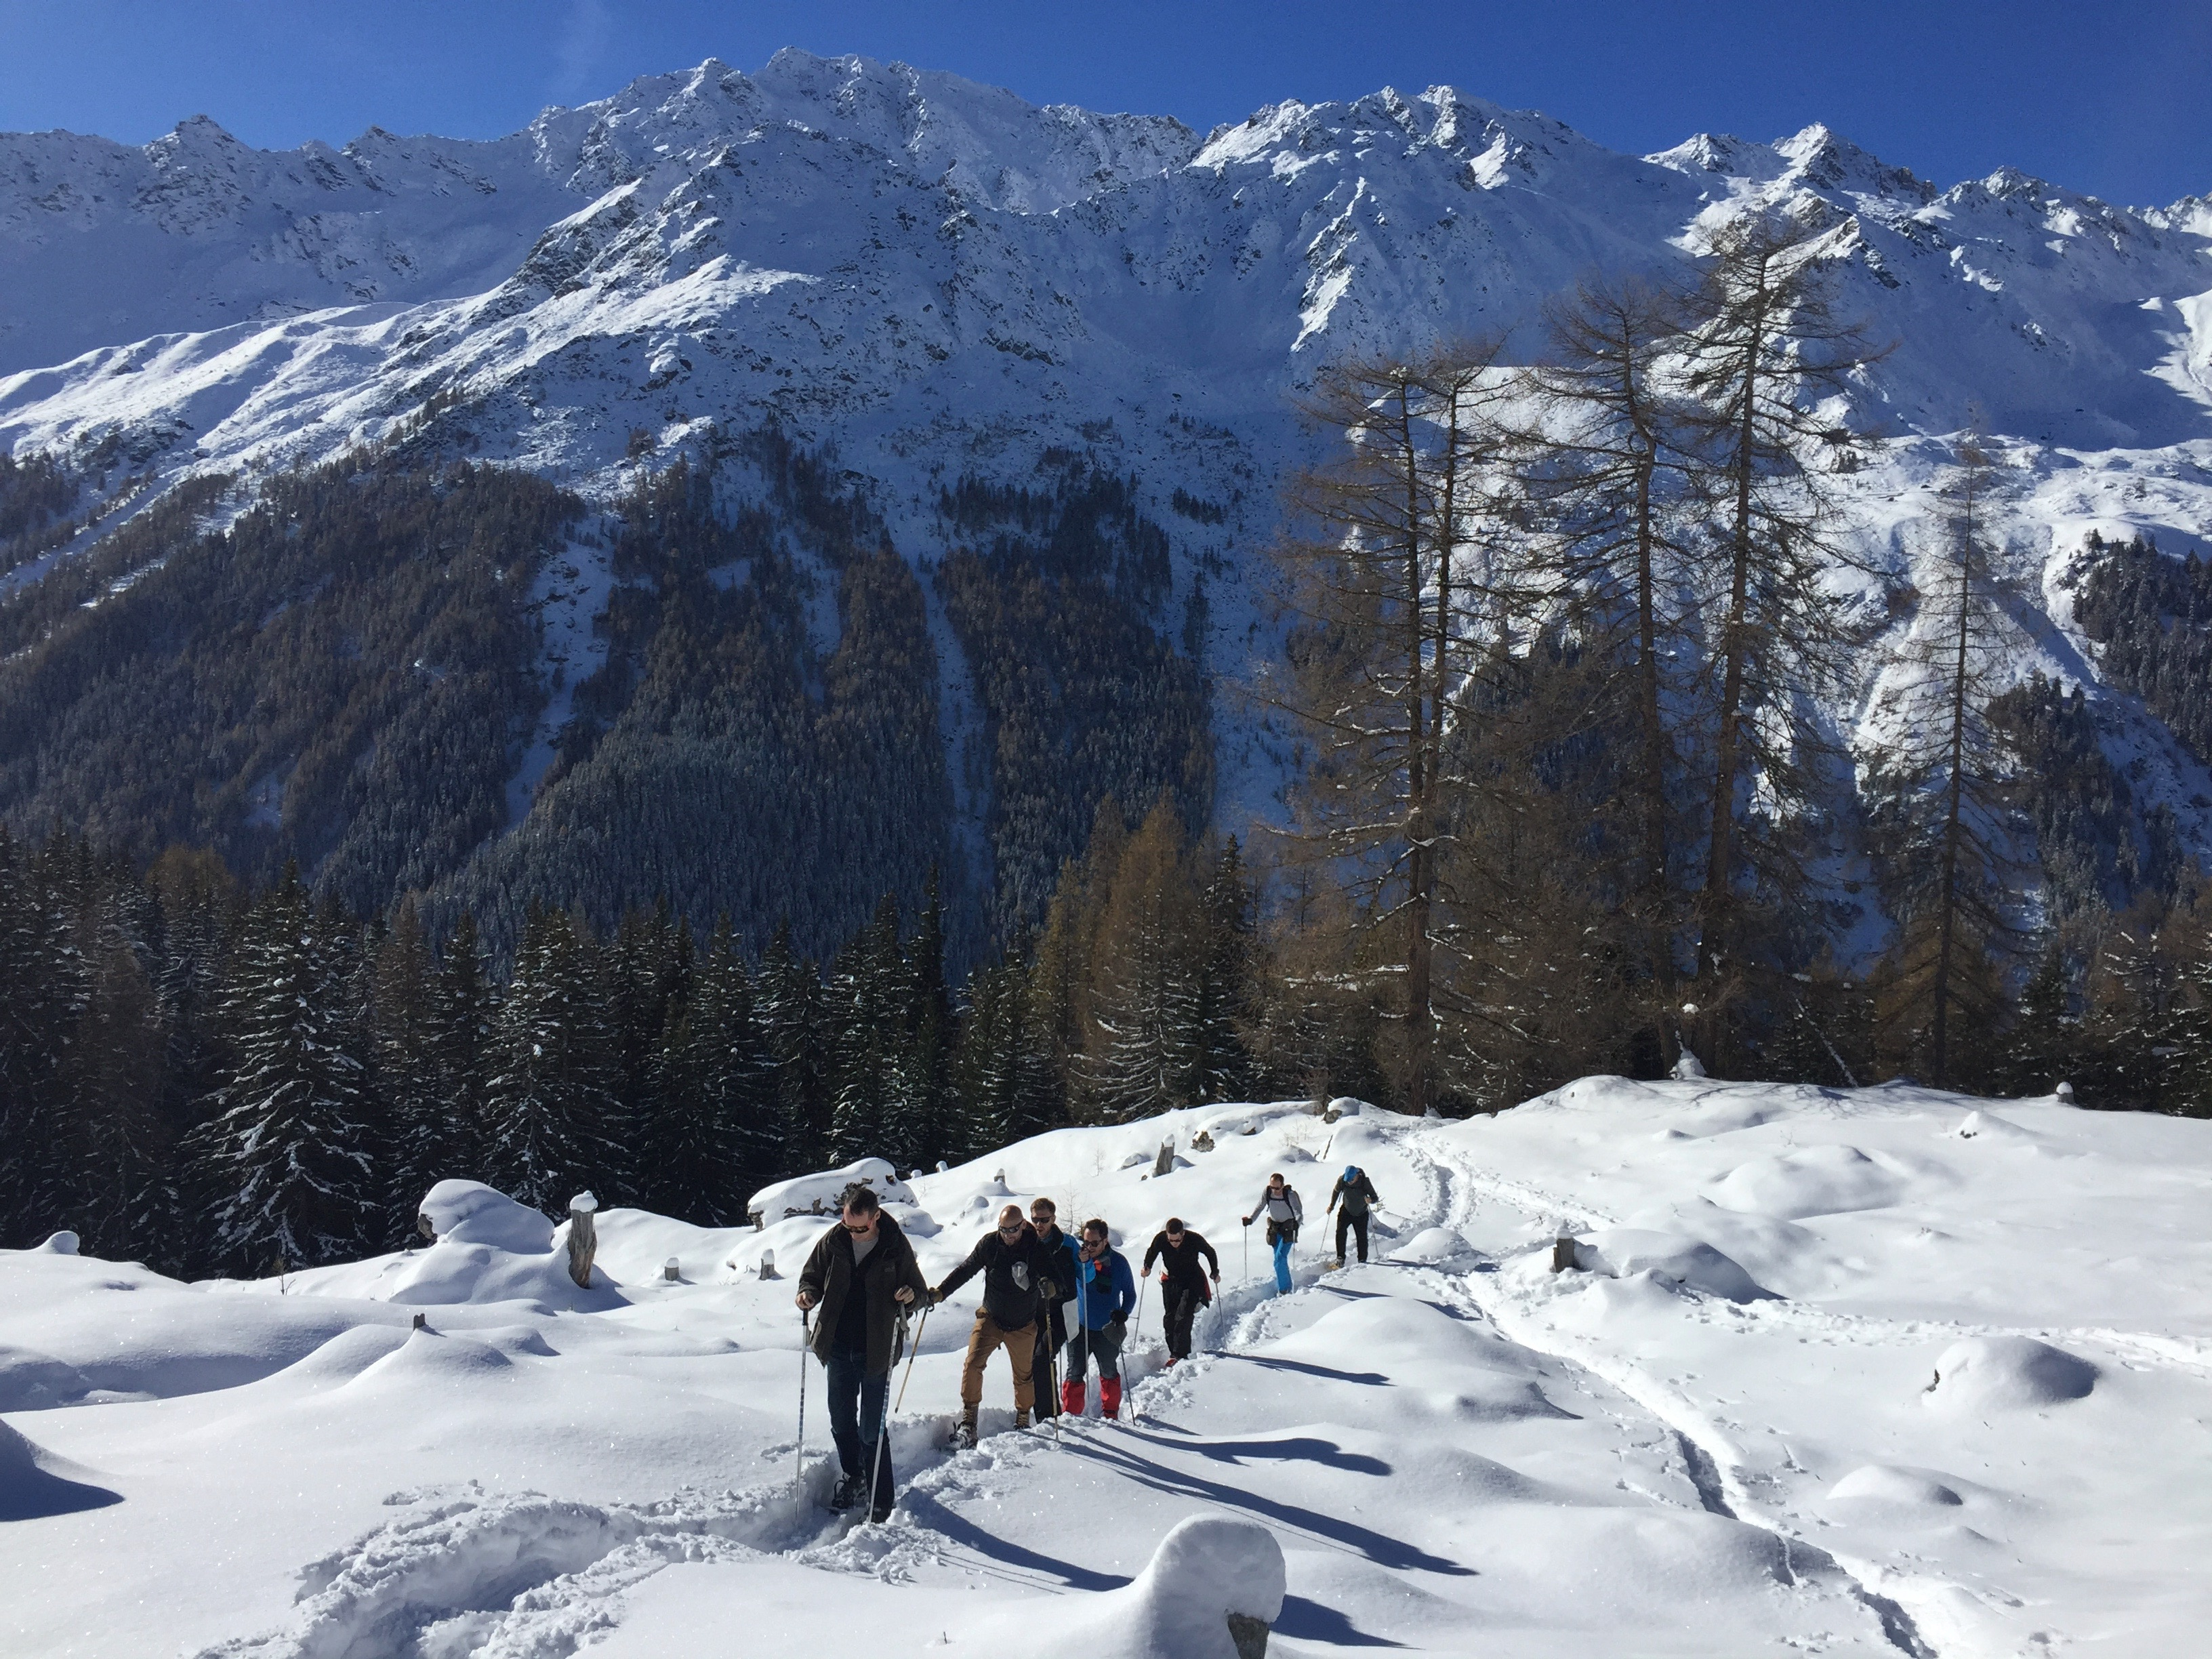 Snow-shoeing is a fantastic way of enjoying magical winter landscapes if you do not wish to ski.